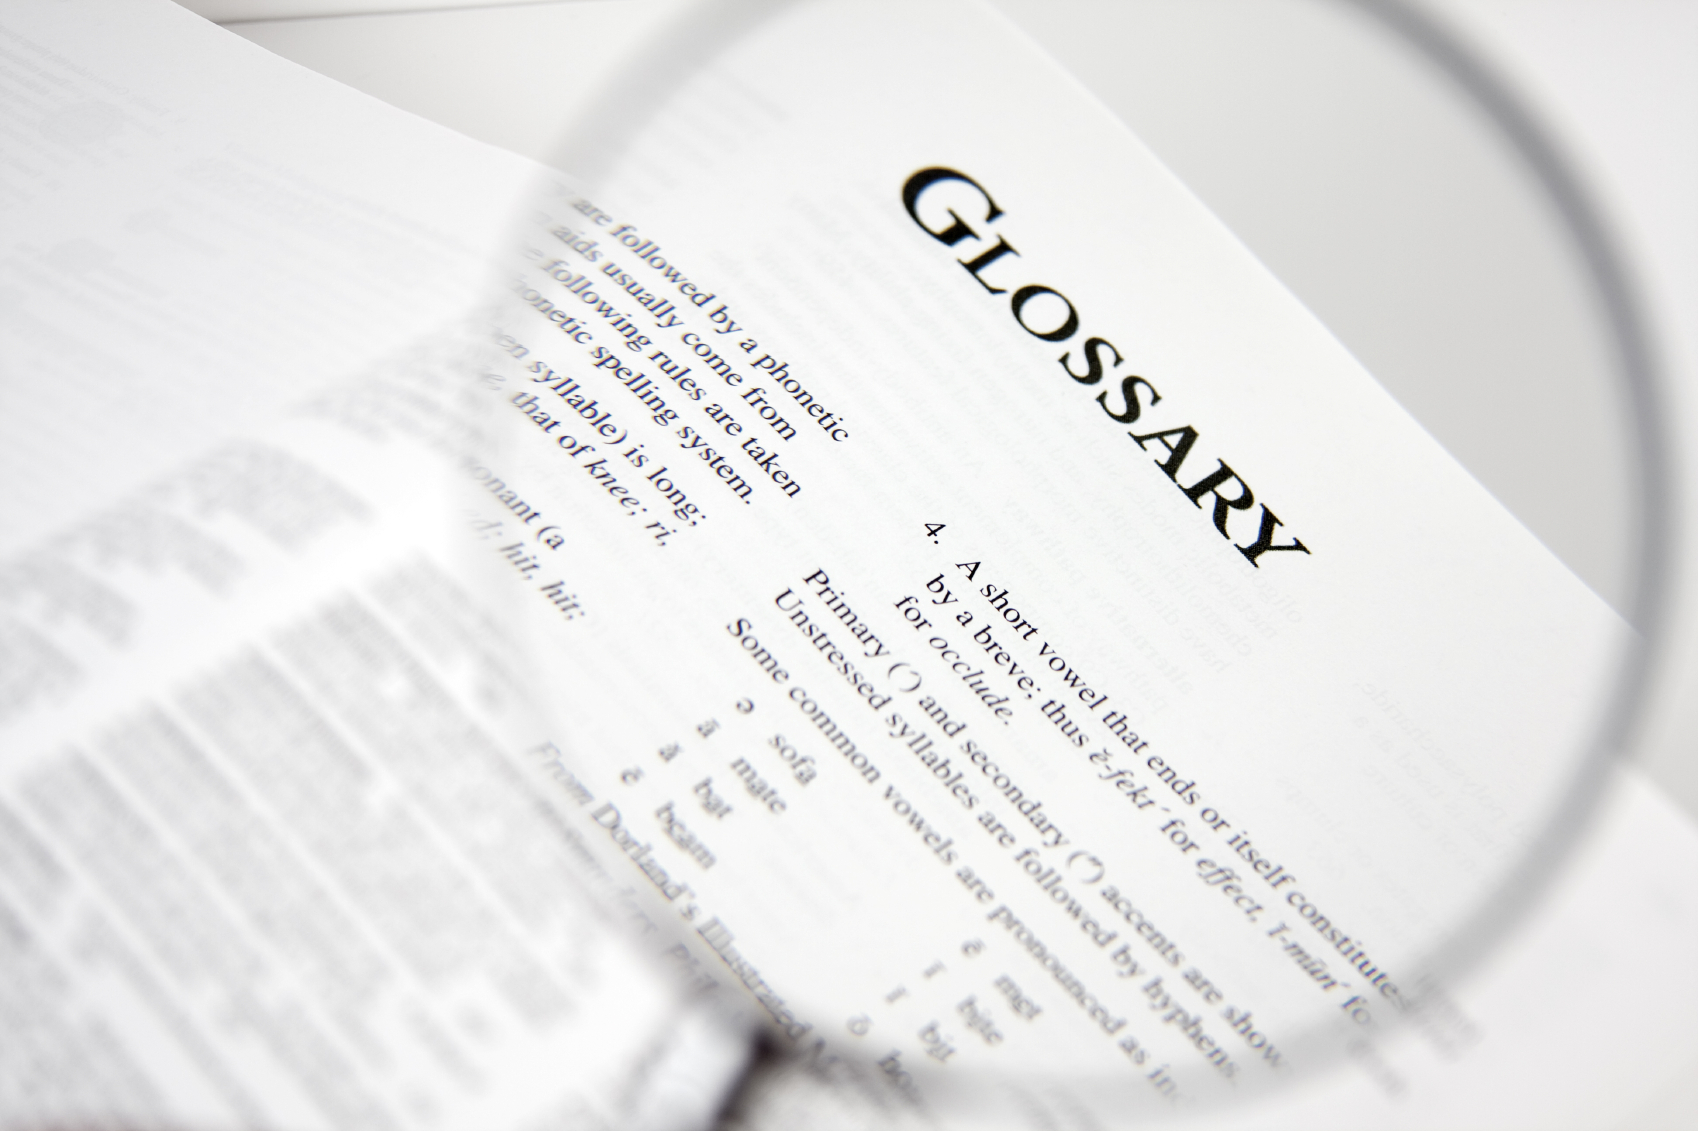 Image for healthcare glossary blog post 2.7.13